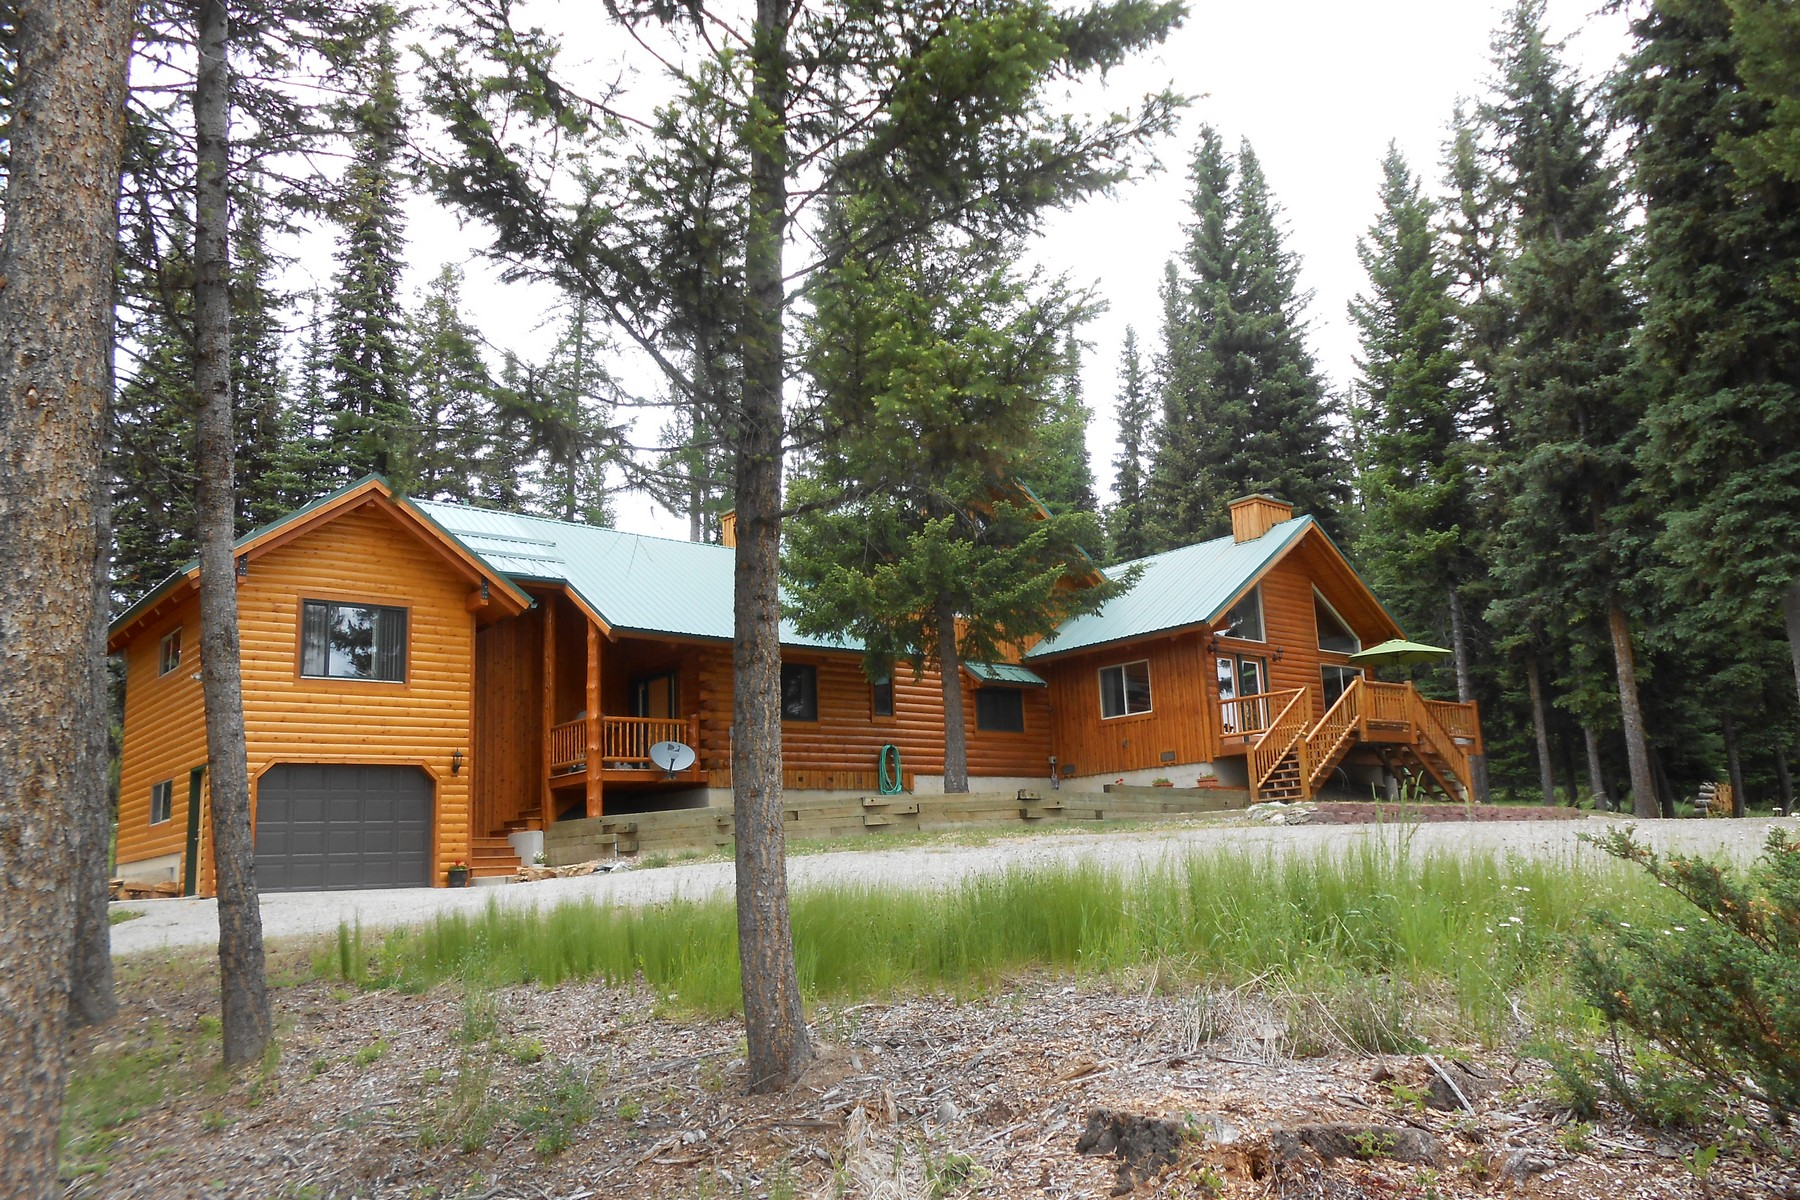 Single Family Home for Sale at Lodge-Style Home on 39 Acres 4301 Star Meadows Rd Whitefish, Montana 59937 United States